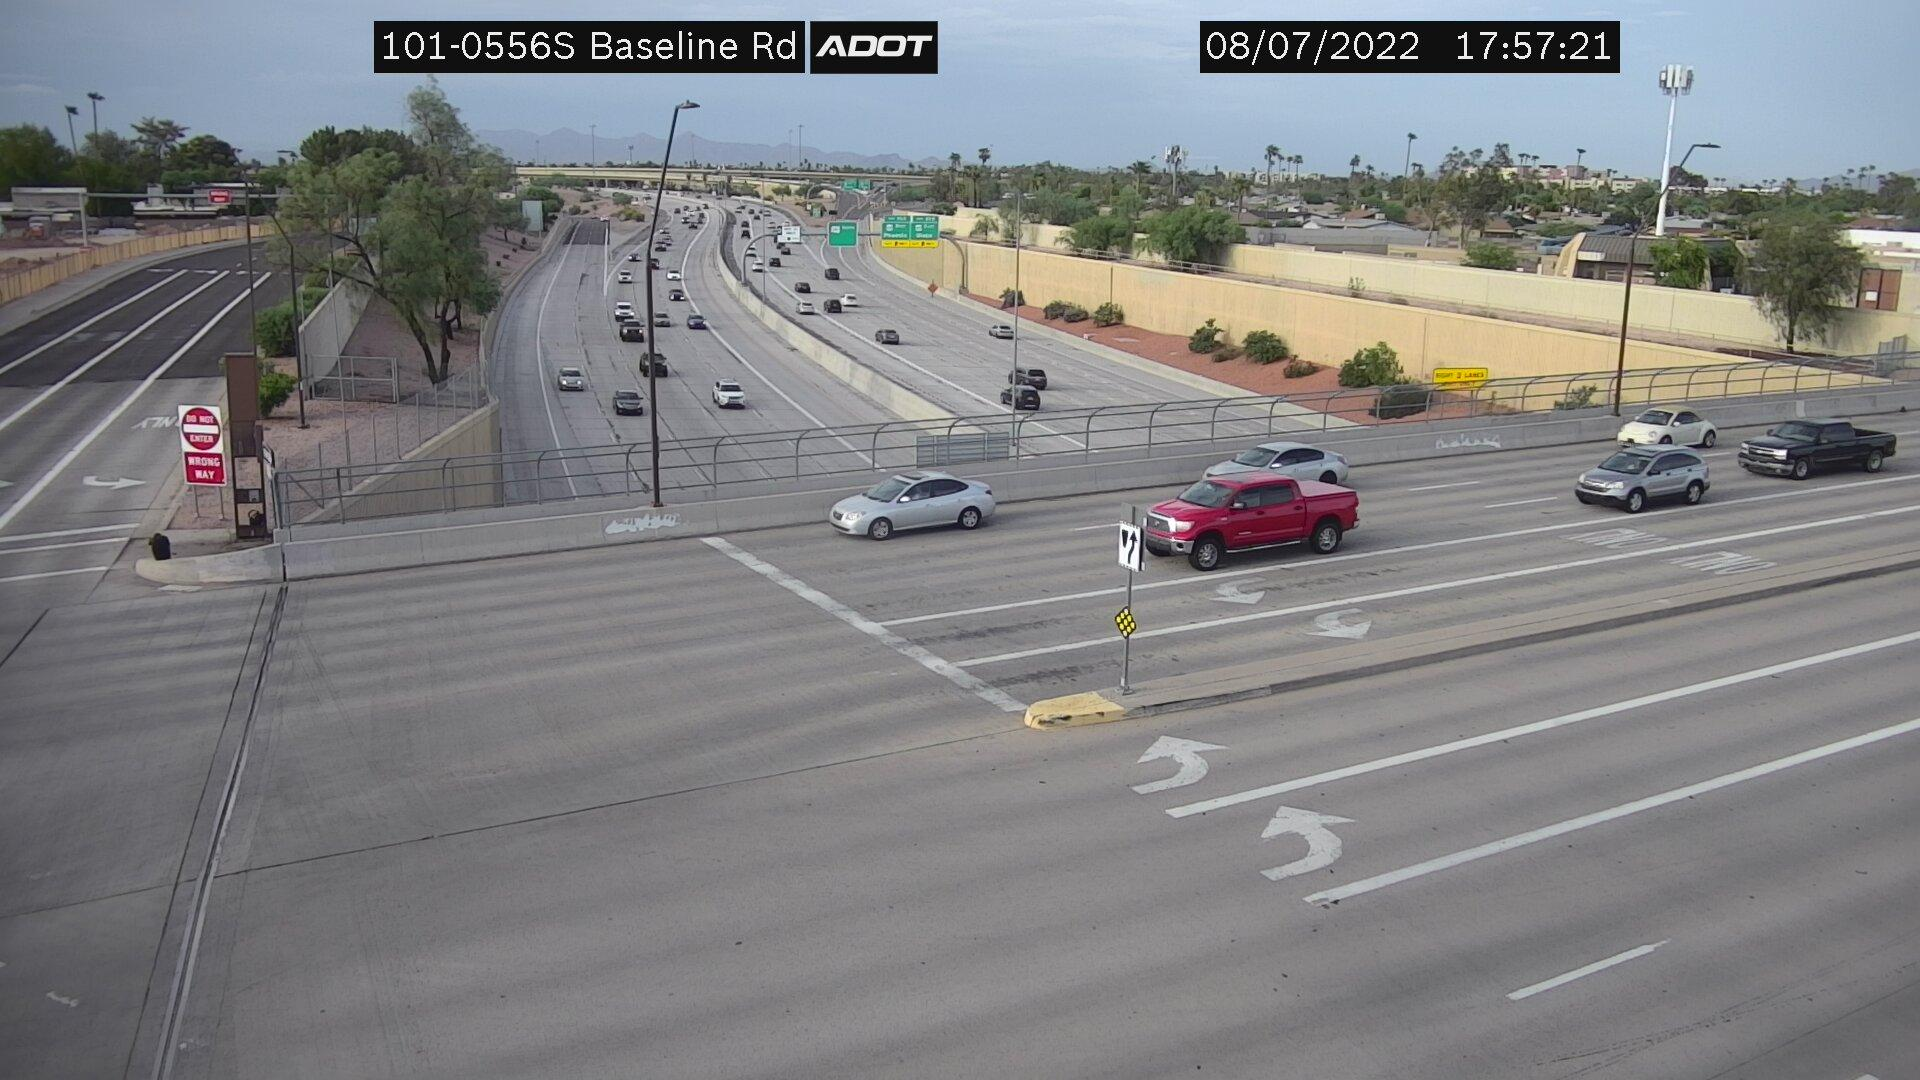 Webcam Knoell East: Loop 101 @ Baseline